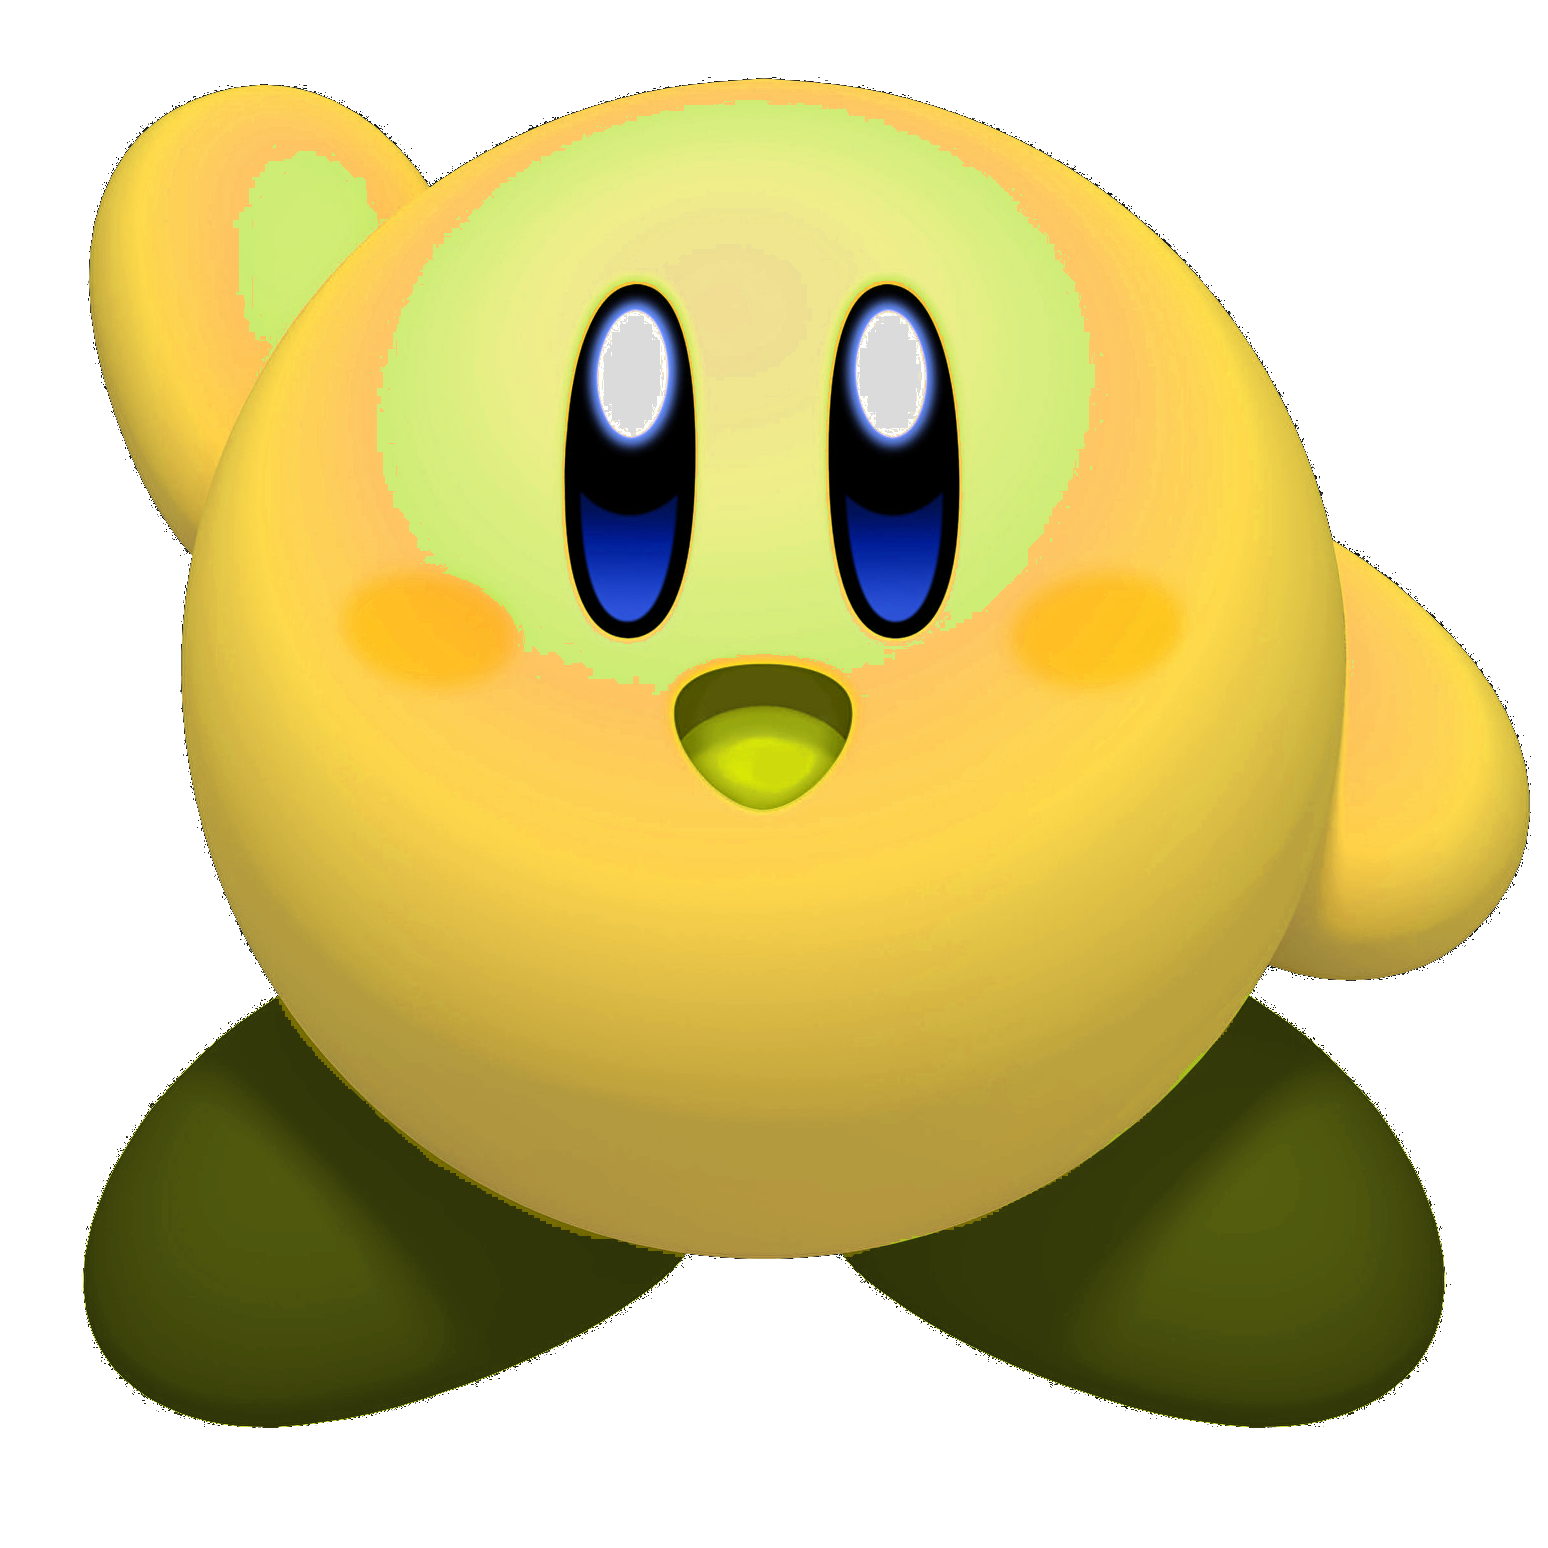 Image Kirby Koopa Troopa Png Fantendo The Video Game